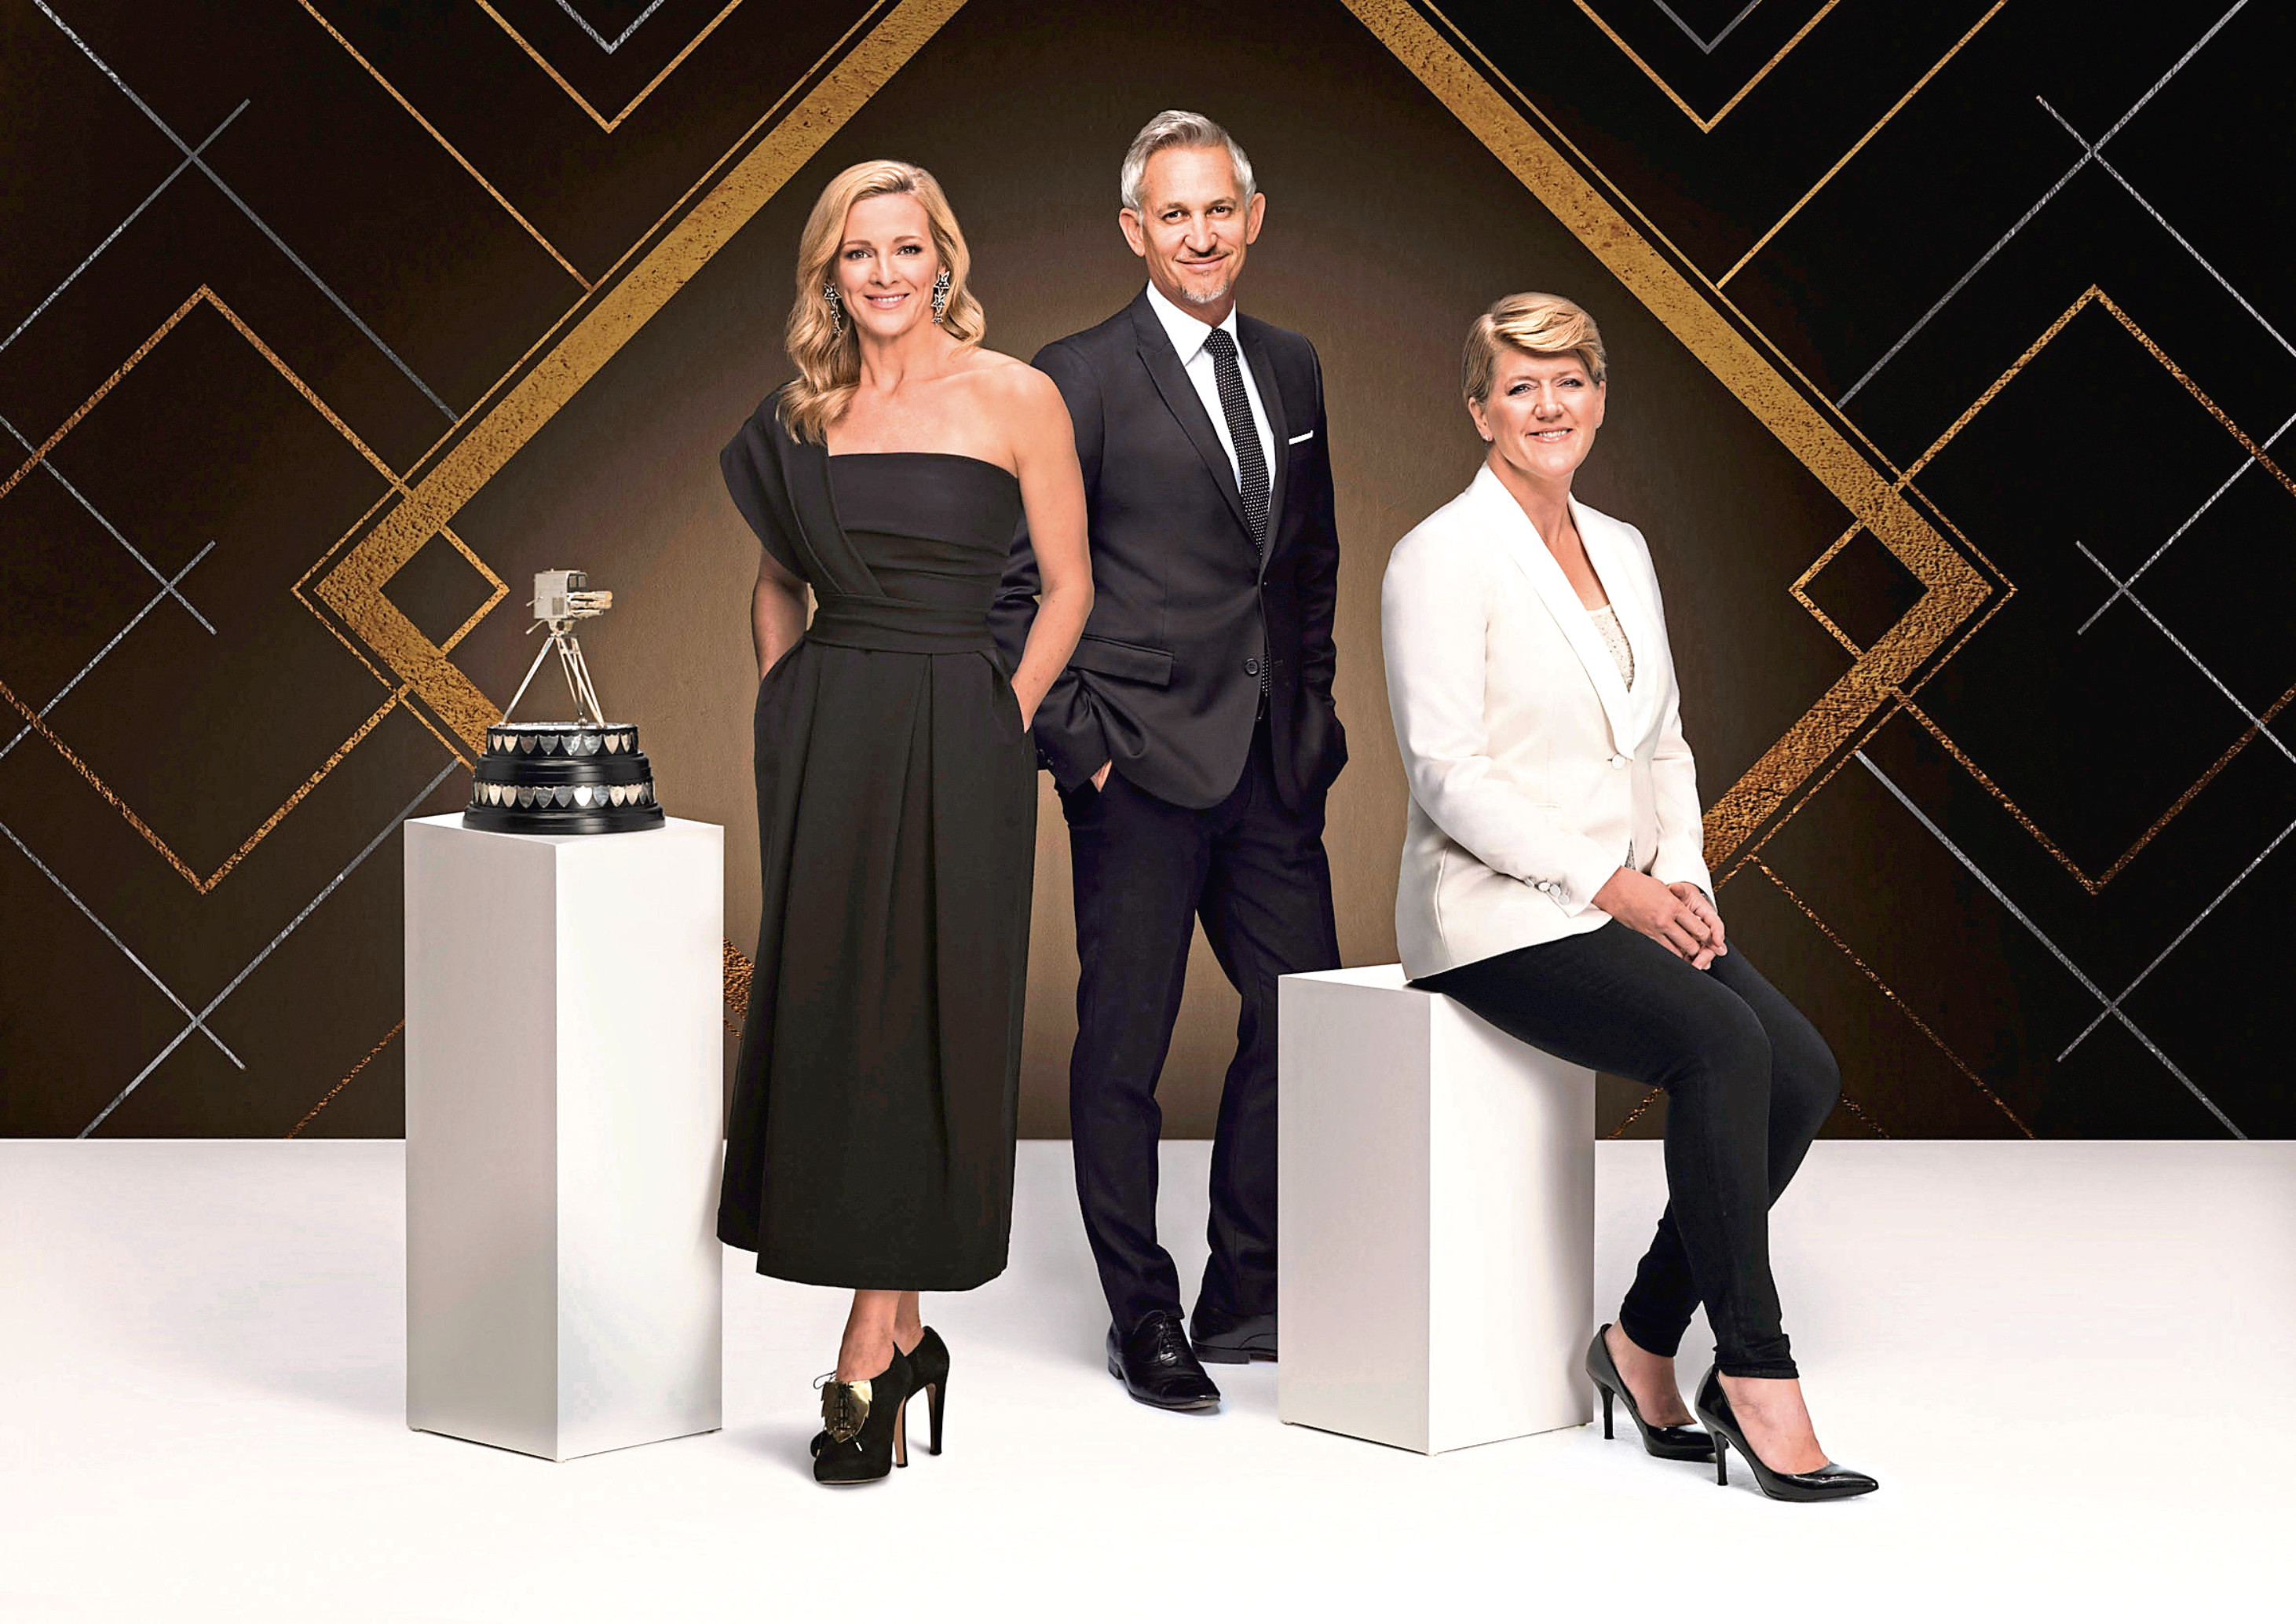 The BBC Sports Personality of the Year Awards will come to Aberdeen's P&J Live next month